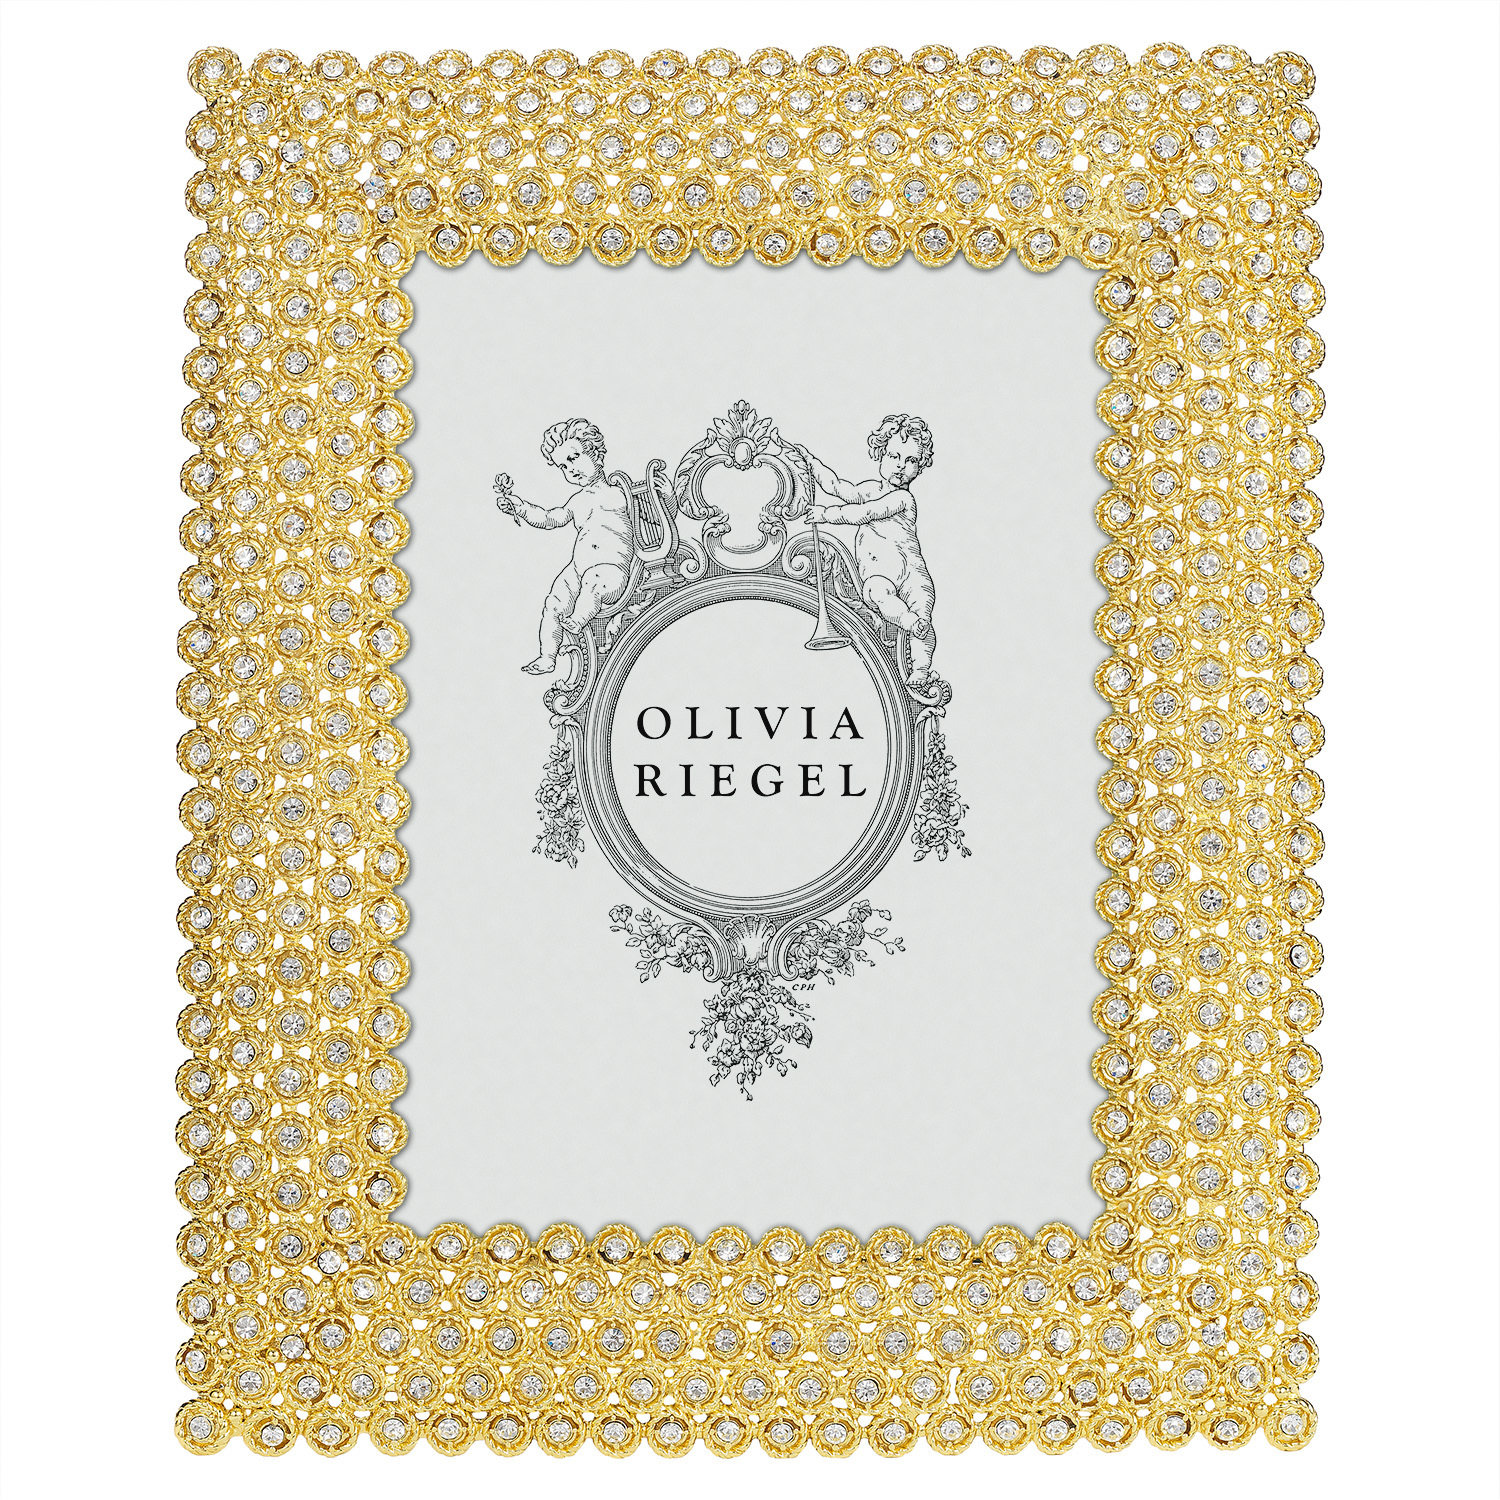 "Olivia Riegel Alexis 5"" x 7"" Frame / Set of 2"